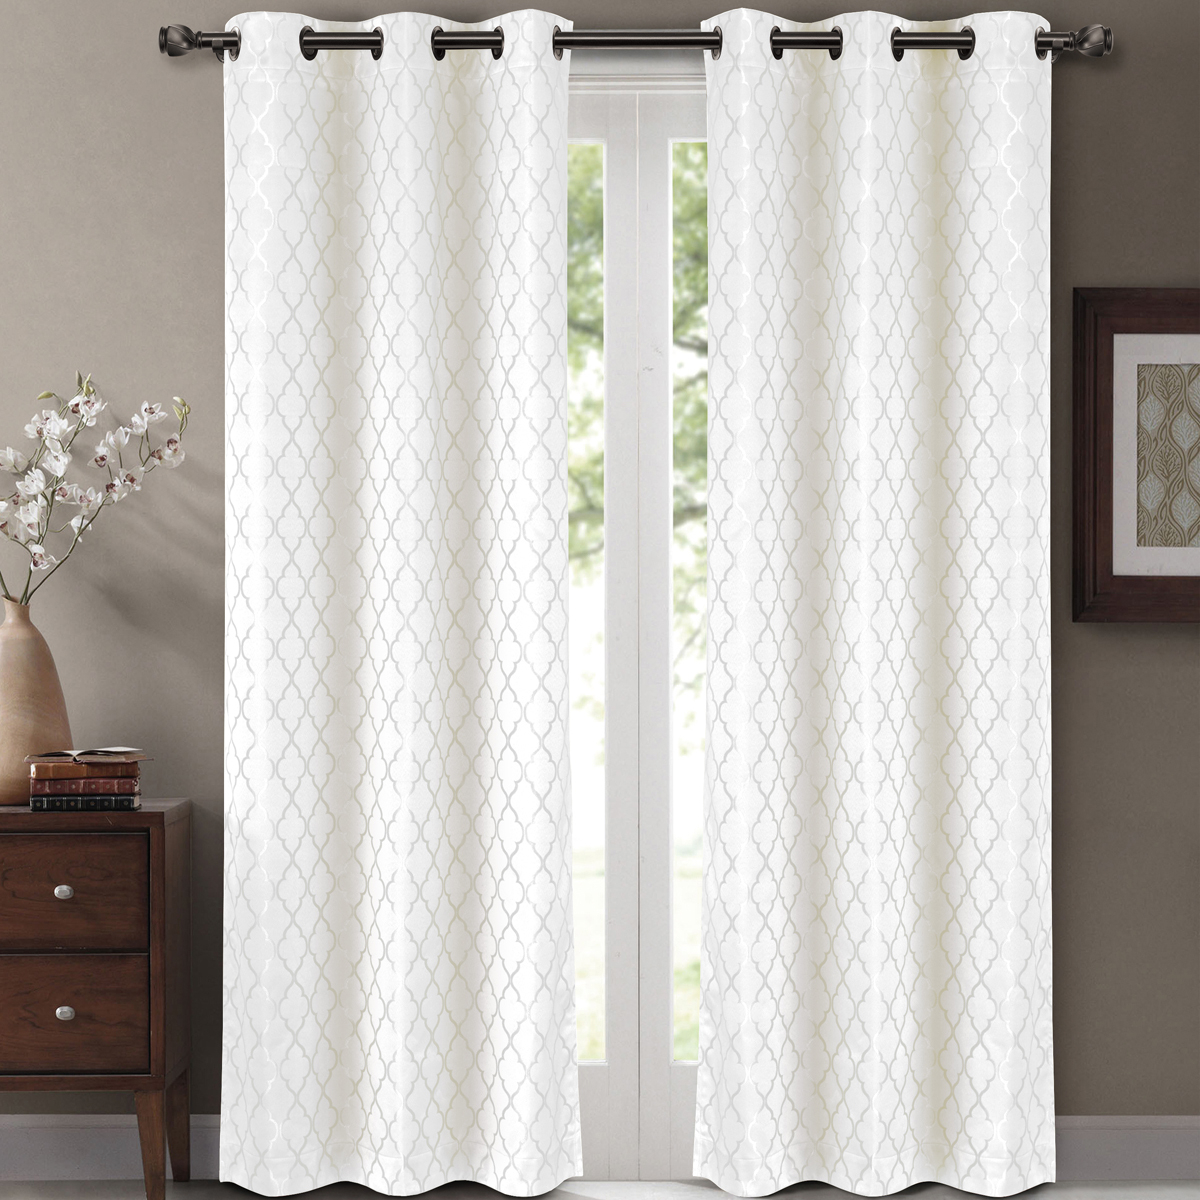 "Widely Used Pair ( Set Of 2) Willow Thermal Insulated Blackout Curtain Panels – White – W84 X L63"" – Walmart Regarding Antique Silver Grommet Top Thermal Insulated Blackout Curtain Panel Pairs (View 13 of 20)"